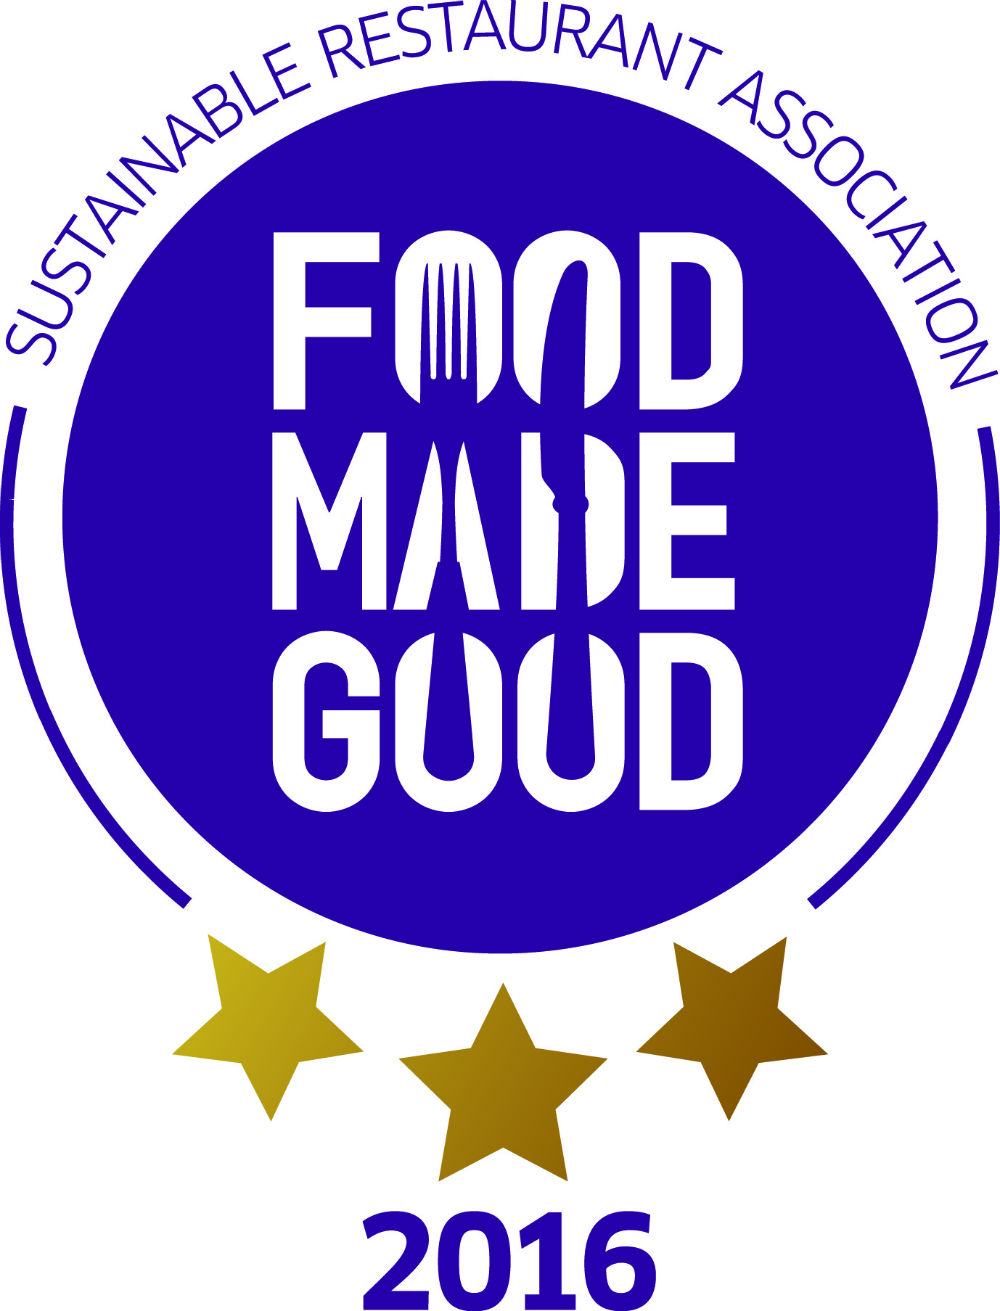 Food Made Good Sustainable Restaurant Association